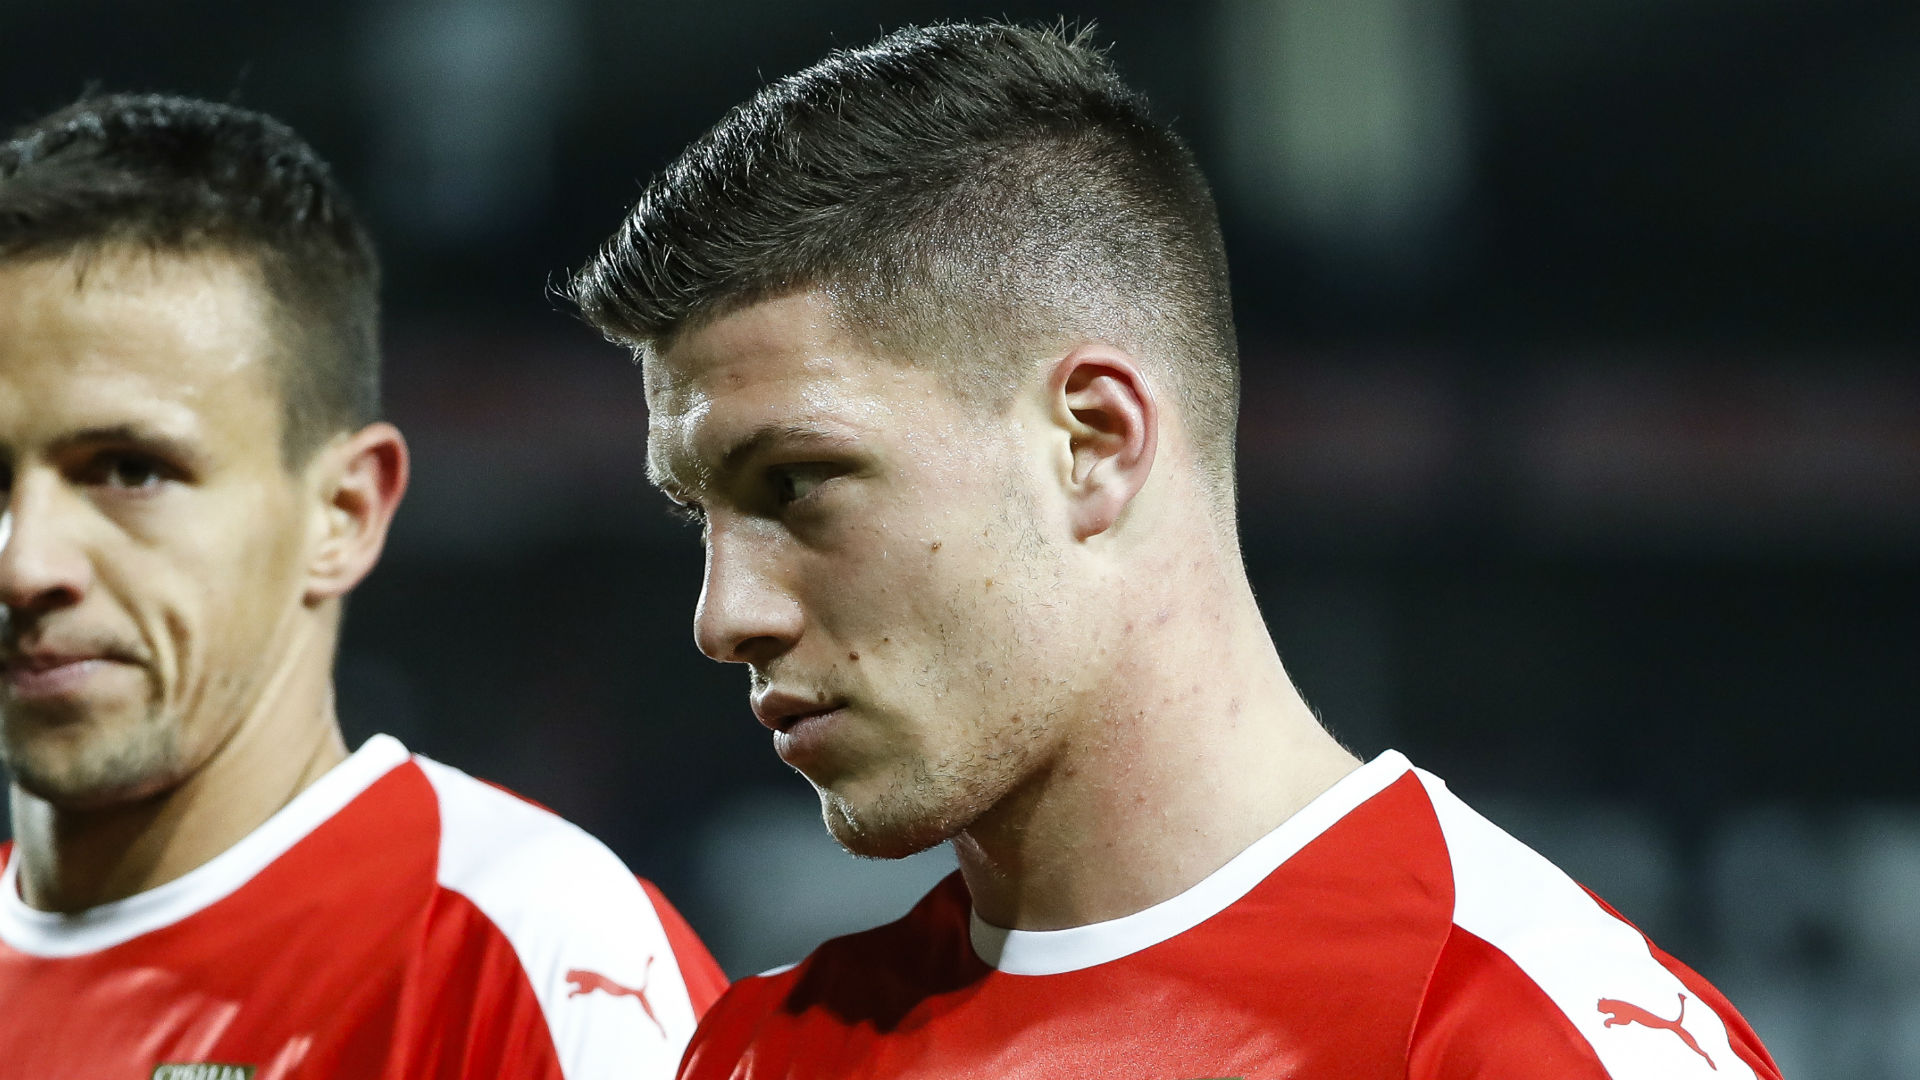 Jovic's Serbia 'misunderstanding' resolved ahead of Euro 2020 play-offs